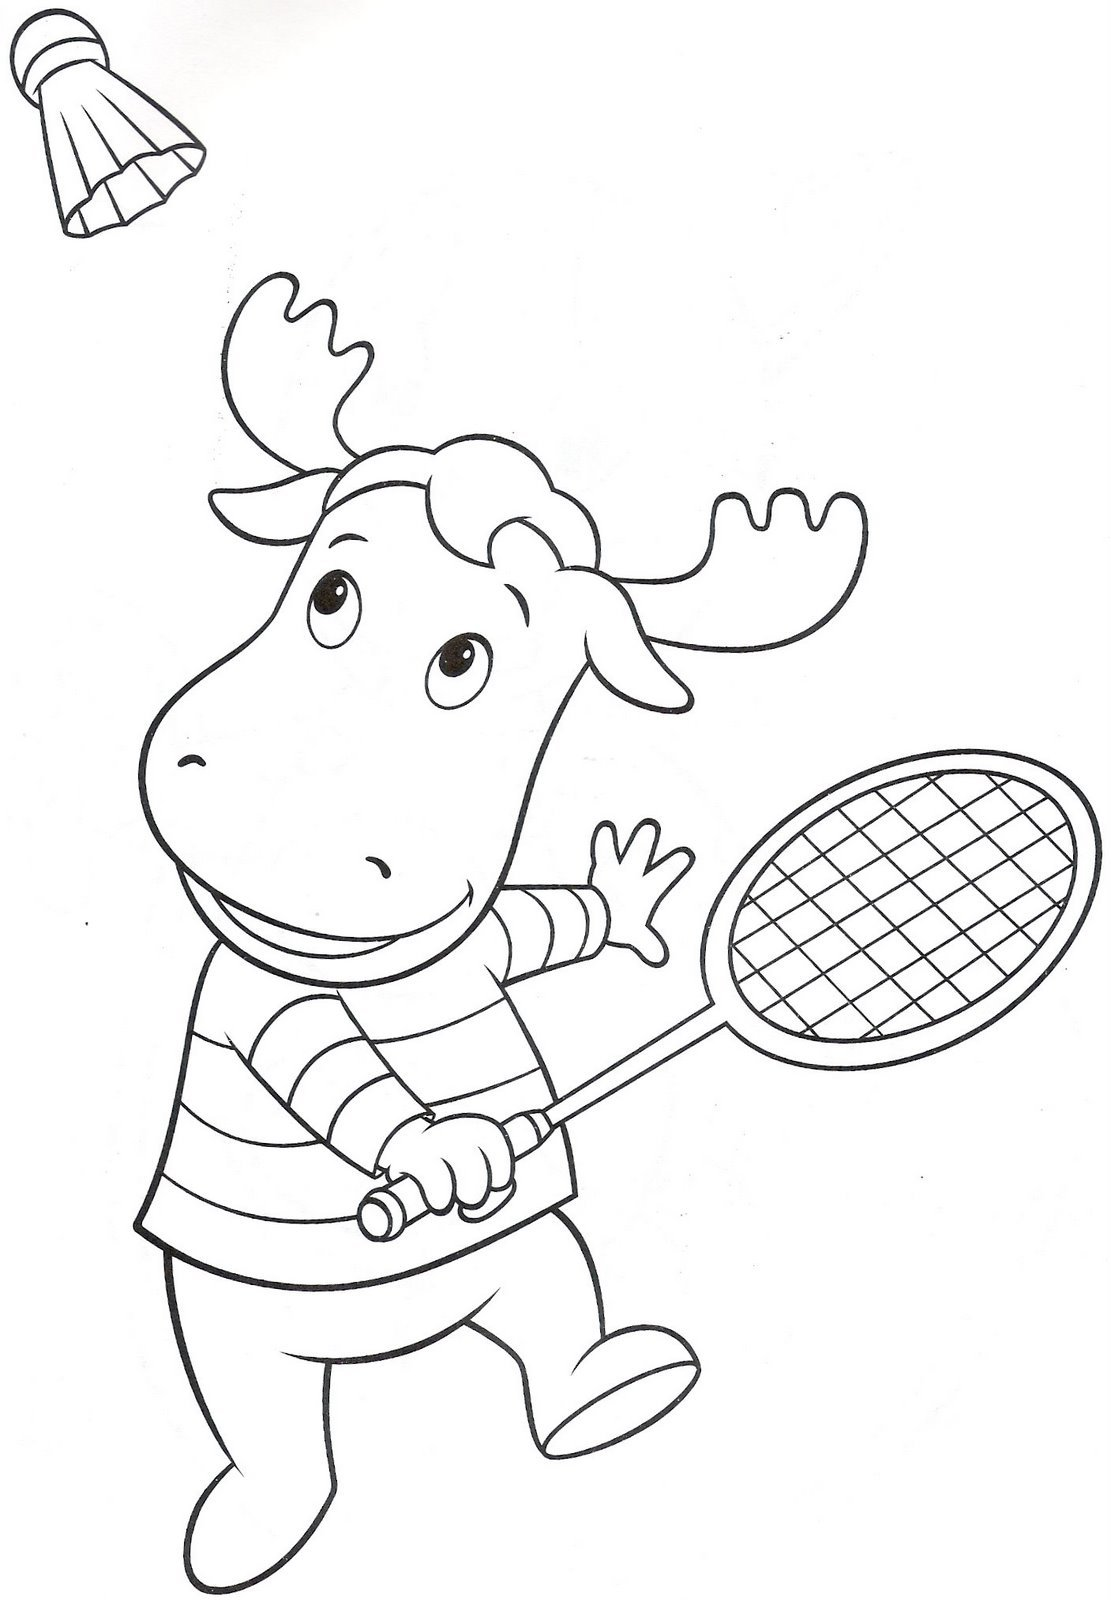 Backyardigans Coloring Pages cartoon reindeer pics coloring pages